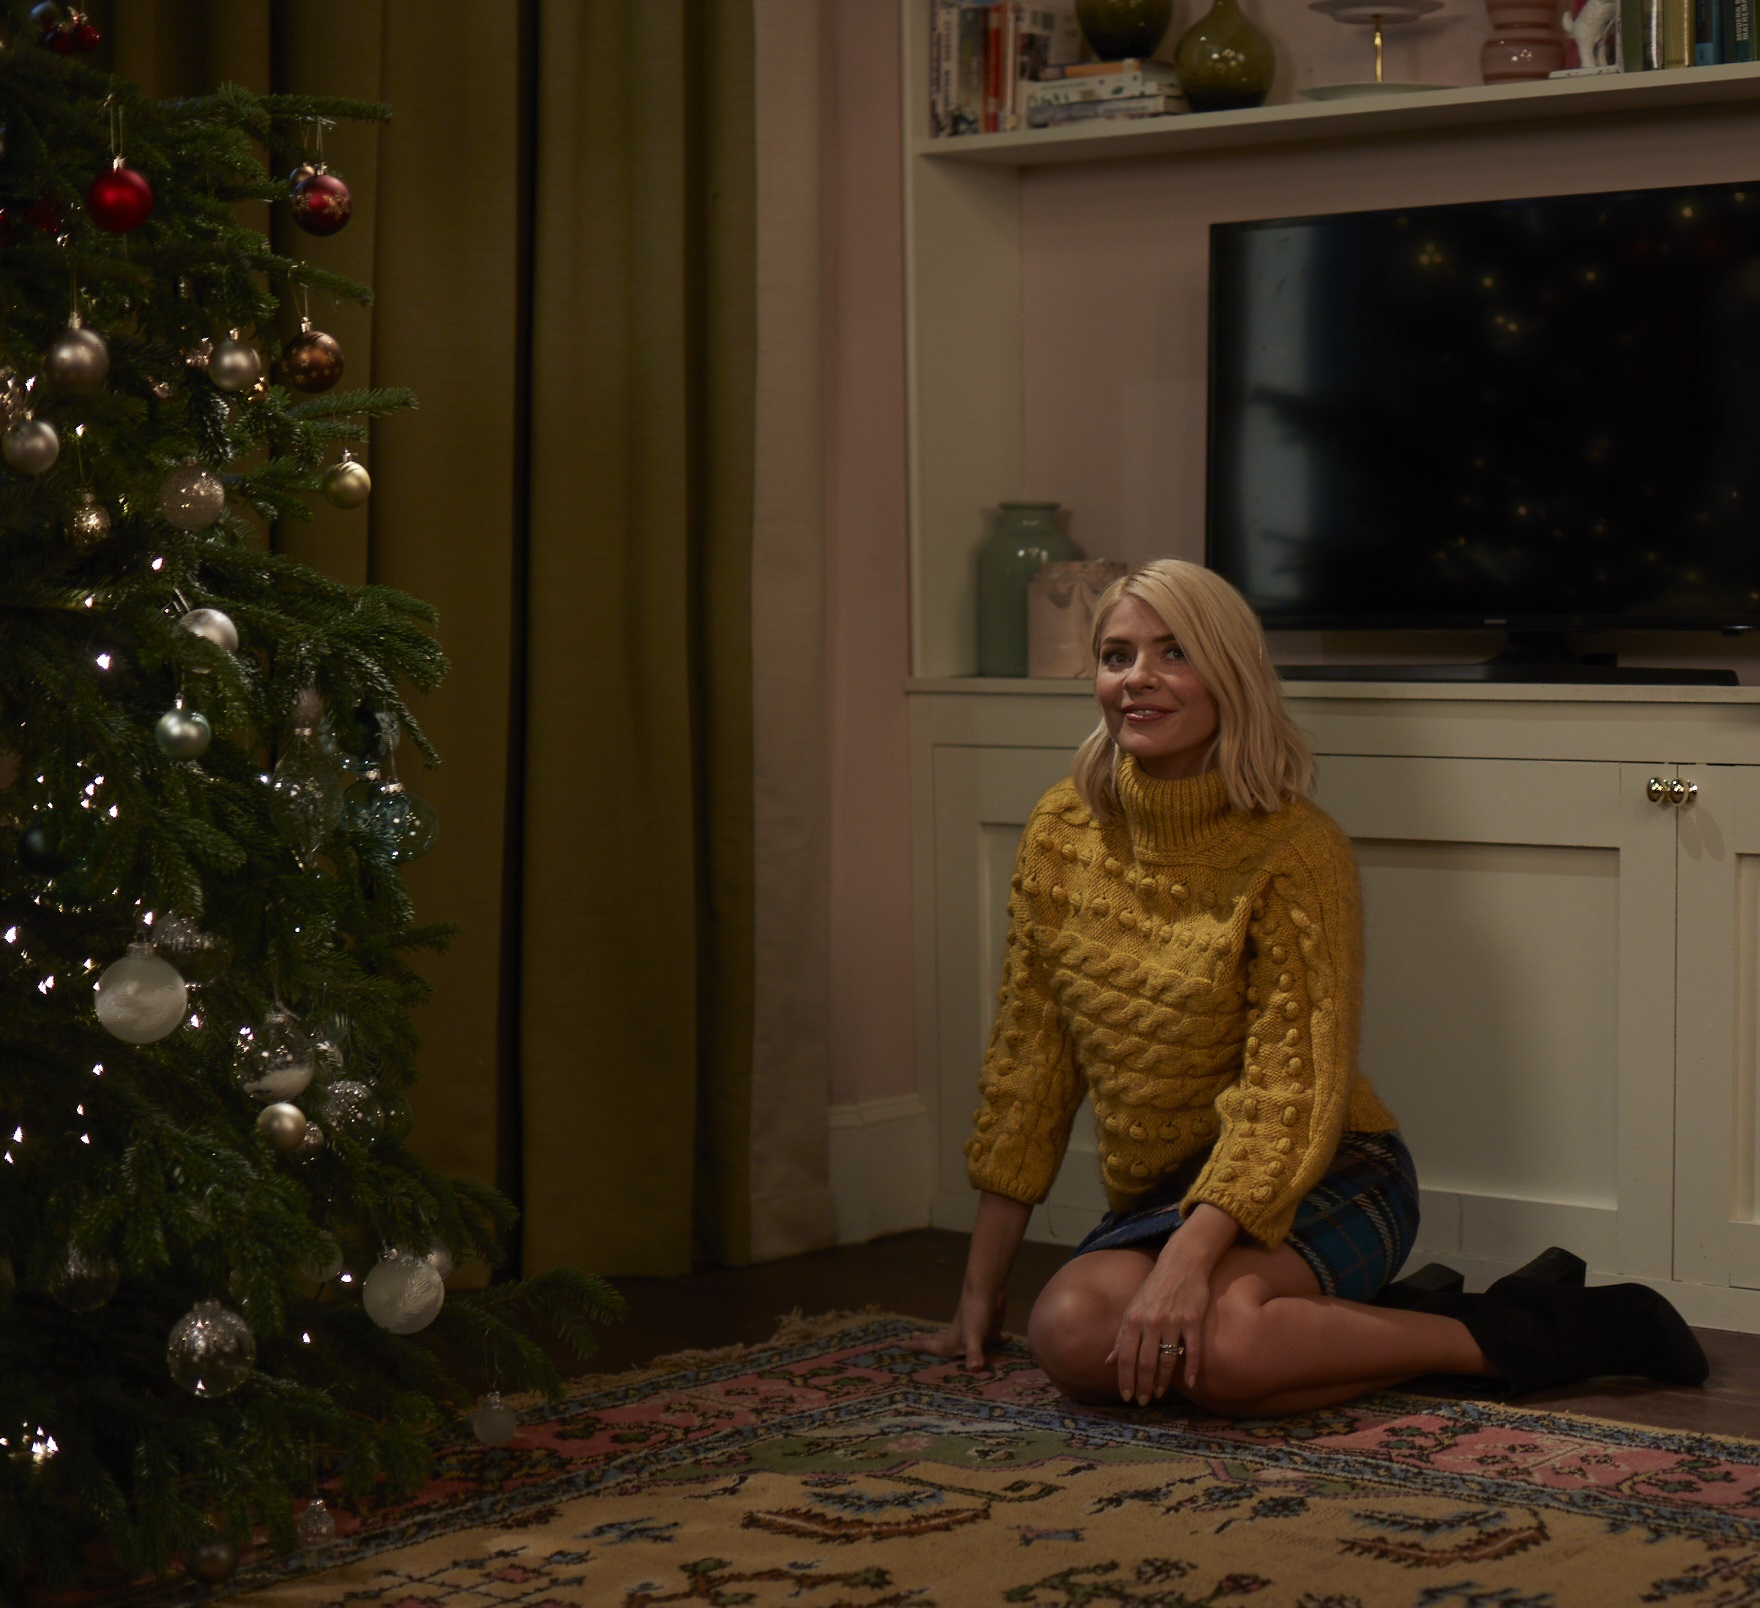 When is the M&S Christmas advert out and when will it be on TV?